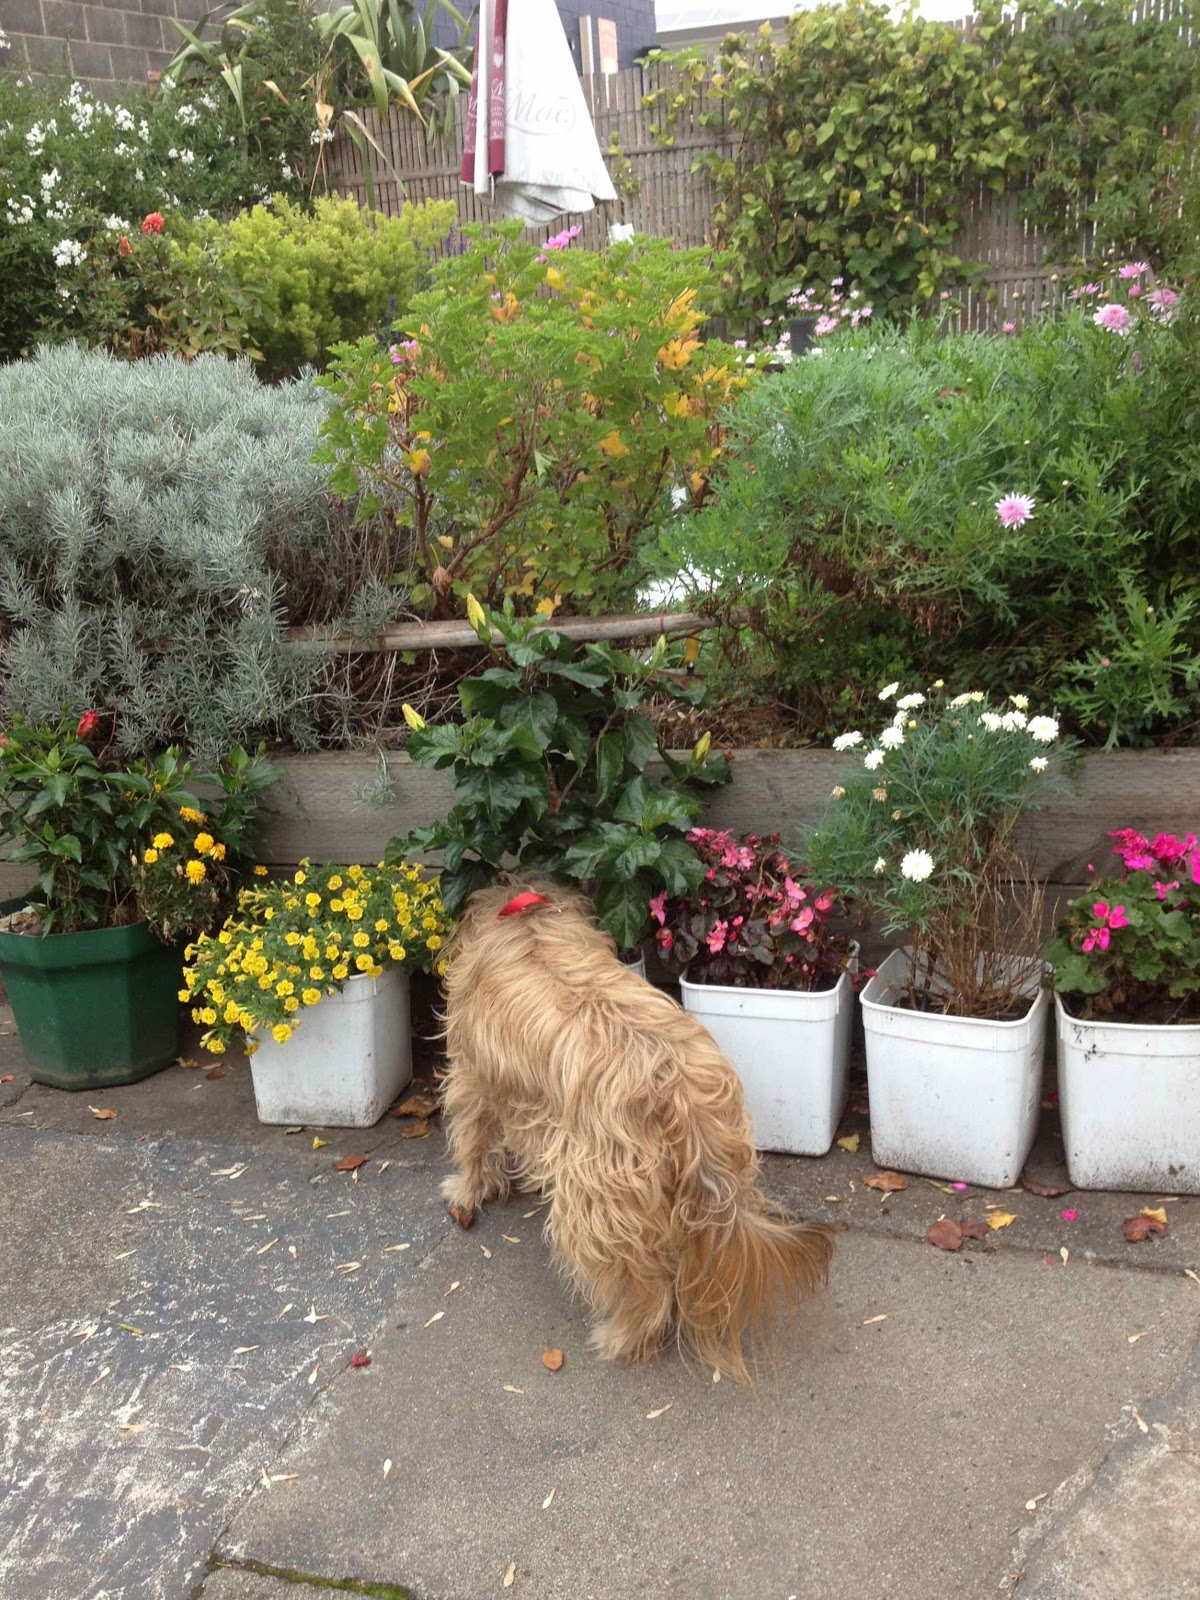 My dog may 2013 - Gardening for pets ...